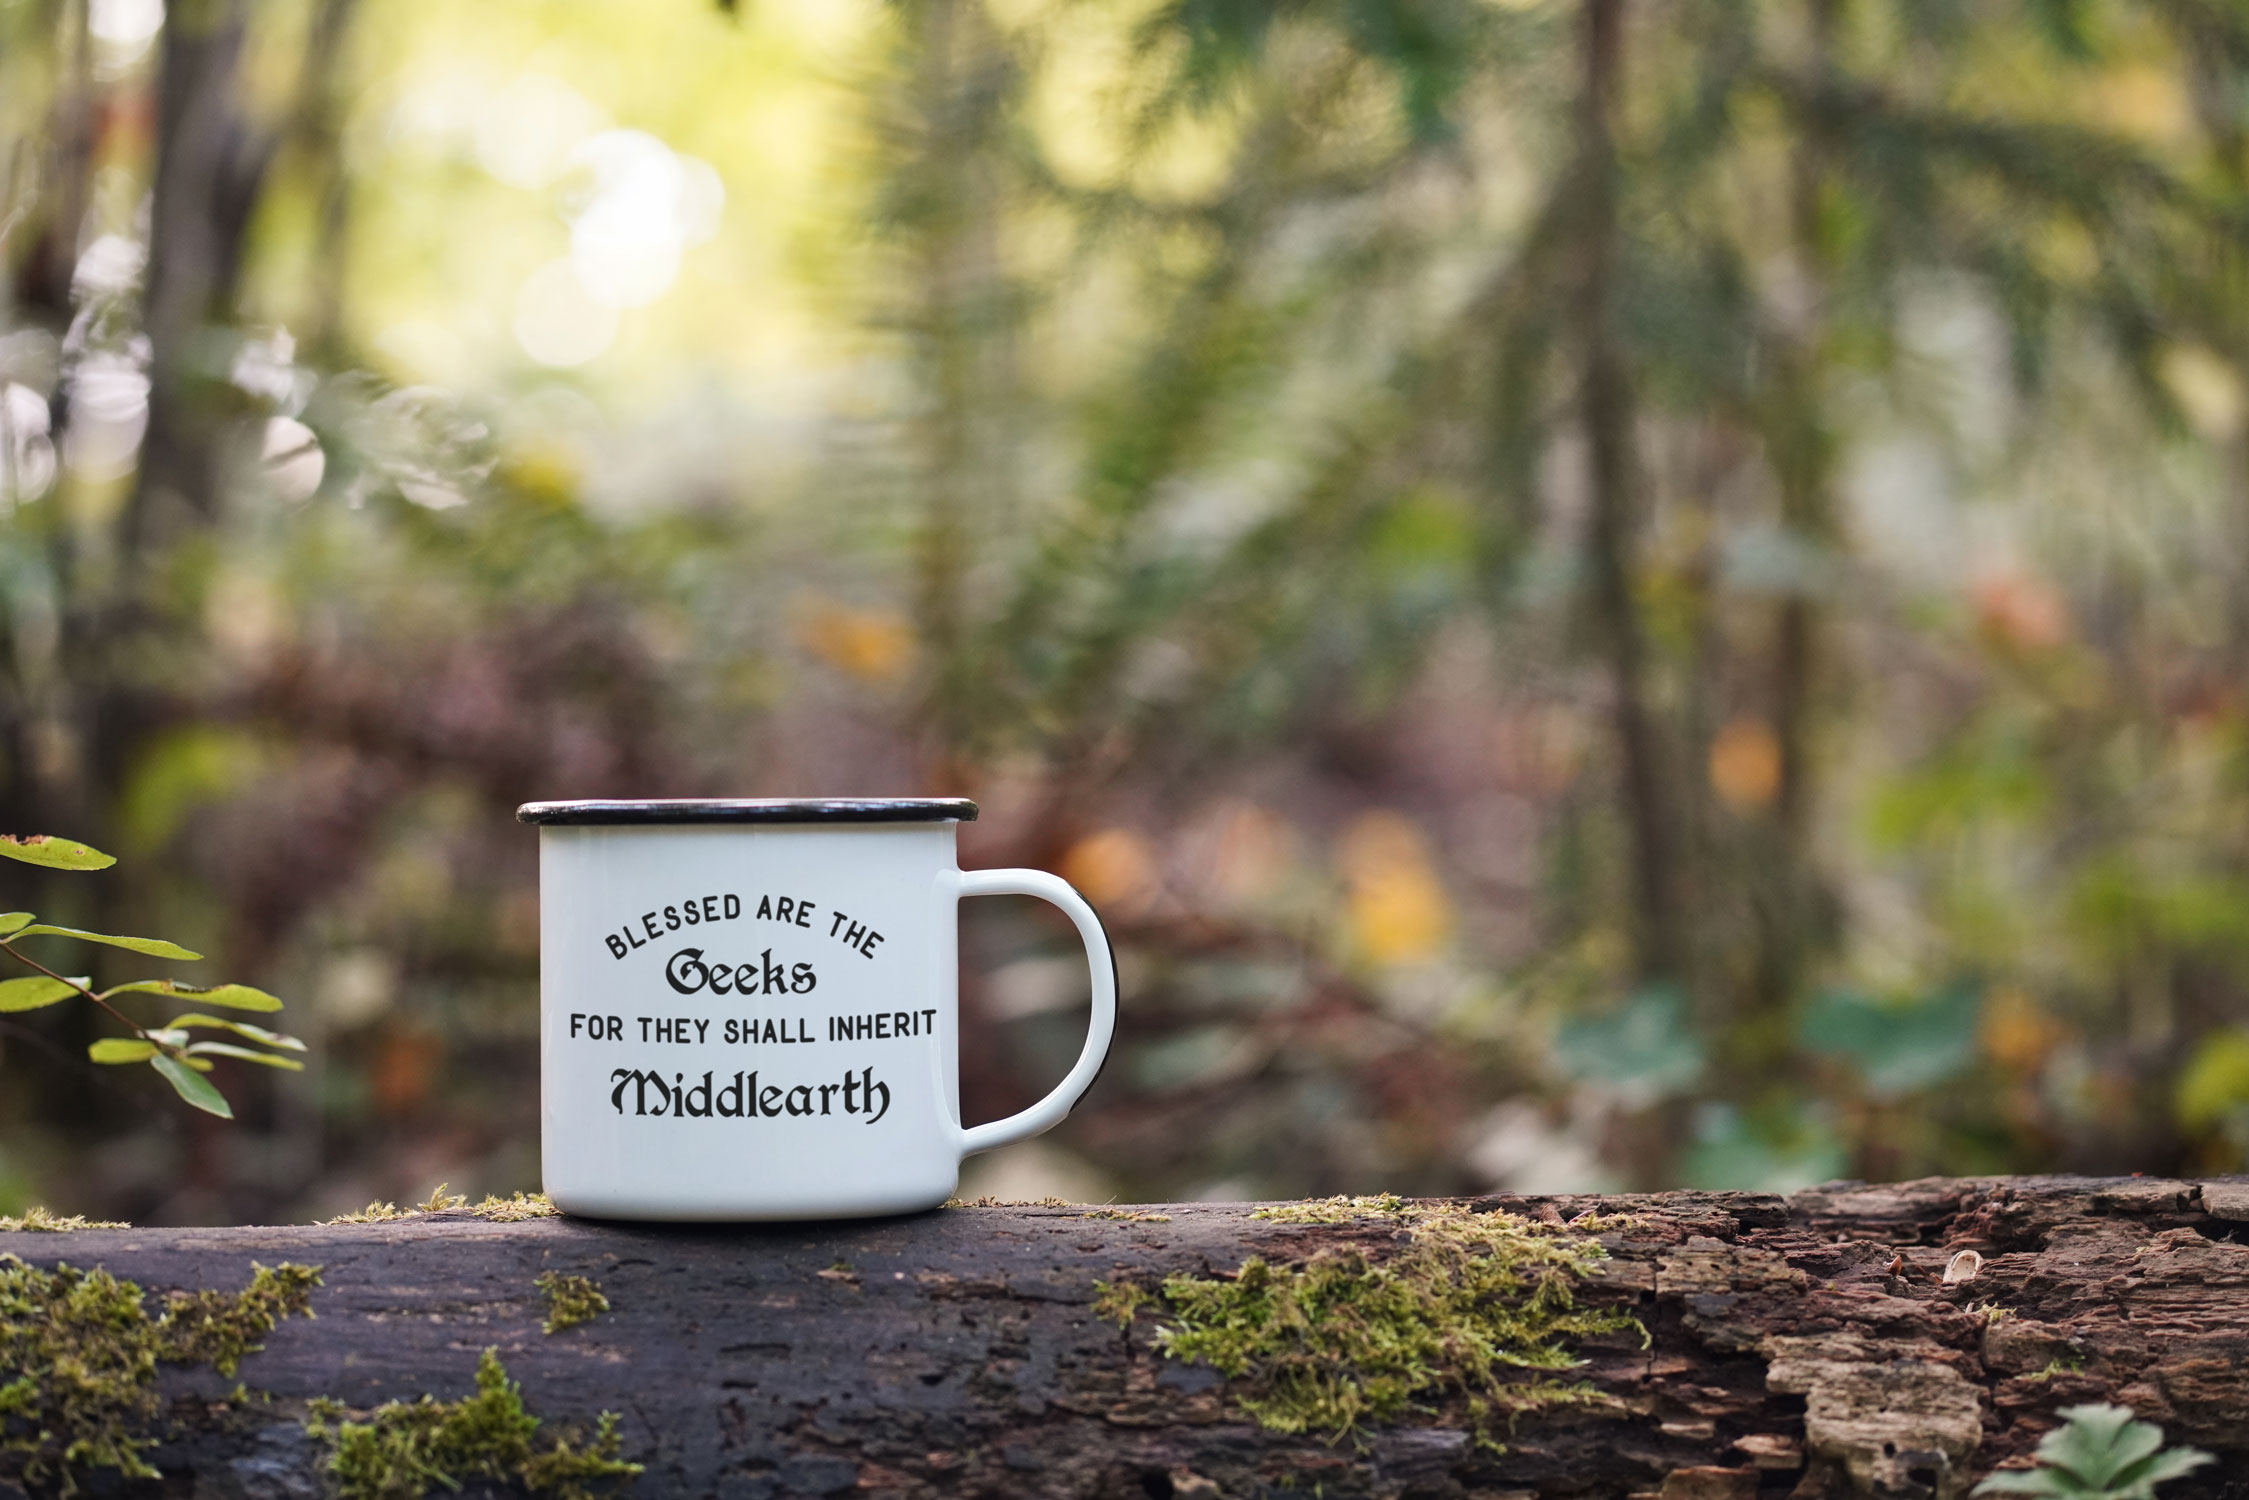 Tacoma based Enamel Co. creates cute mugs and dishes featuring funny PUNNY sayings. (Photo: Enamel Co.)